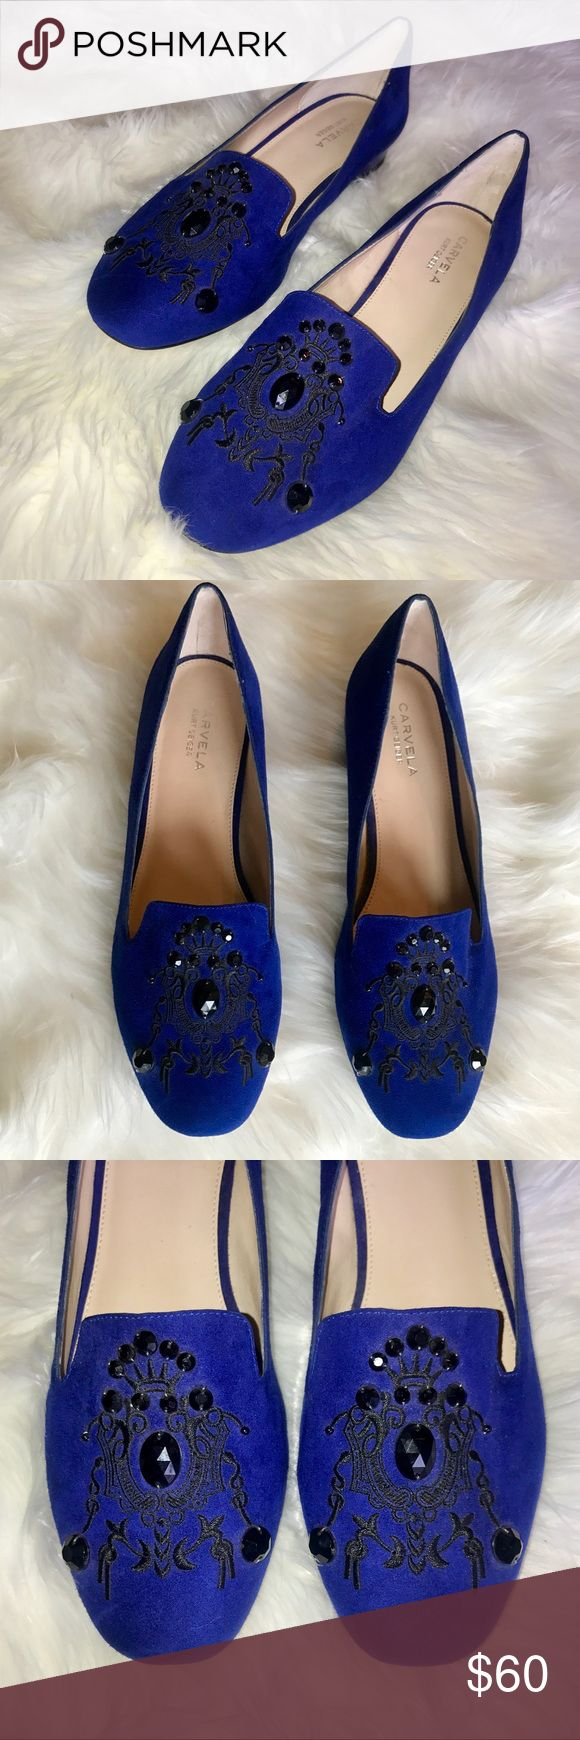 Carvela Kurt Geiger Women's Blue Suede Flats Carvela Kurt Geiger Flats Blue Suede Black embellished design  Women's Size EURO 41 (fits more US 10.5) Worn Once  EXCELLENT CONDITION SHIPS TOMORROW Kurt Geiger Shoes Flats & Loafers